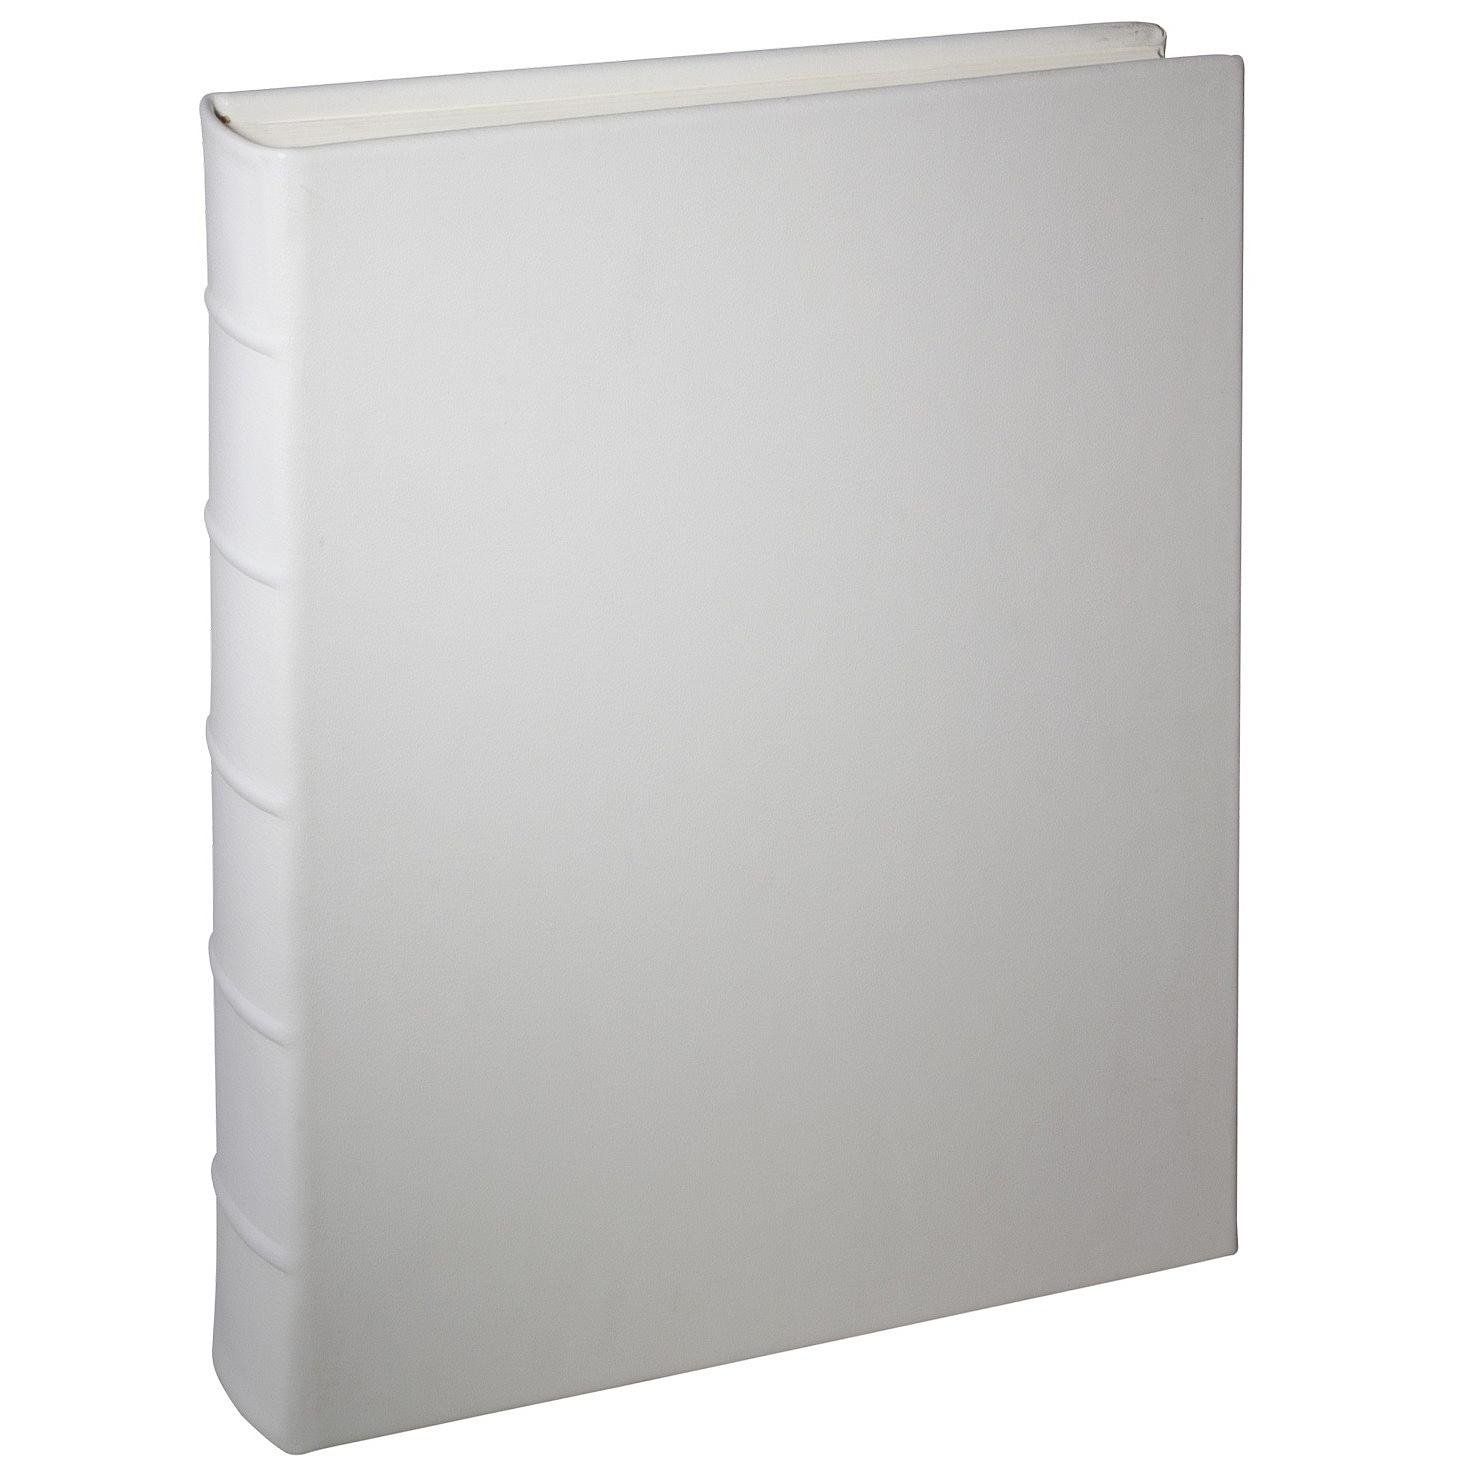 Wedding White Leather Medium Bound Album by Graphic Image - 9x12 by Graphic Image